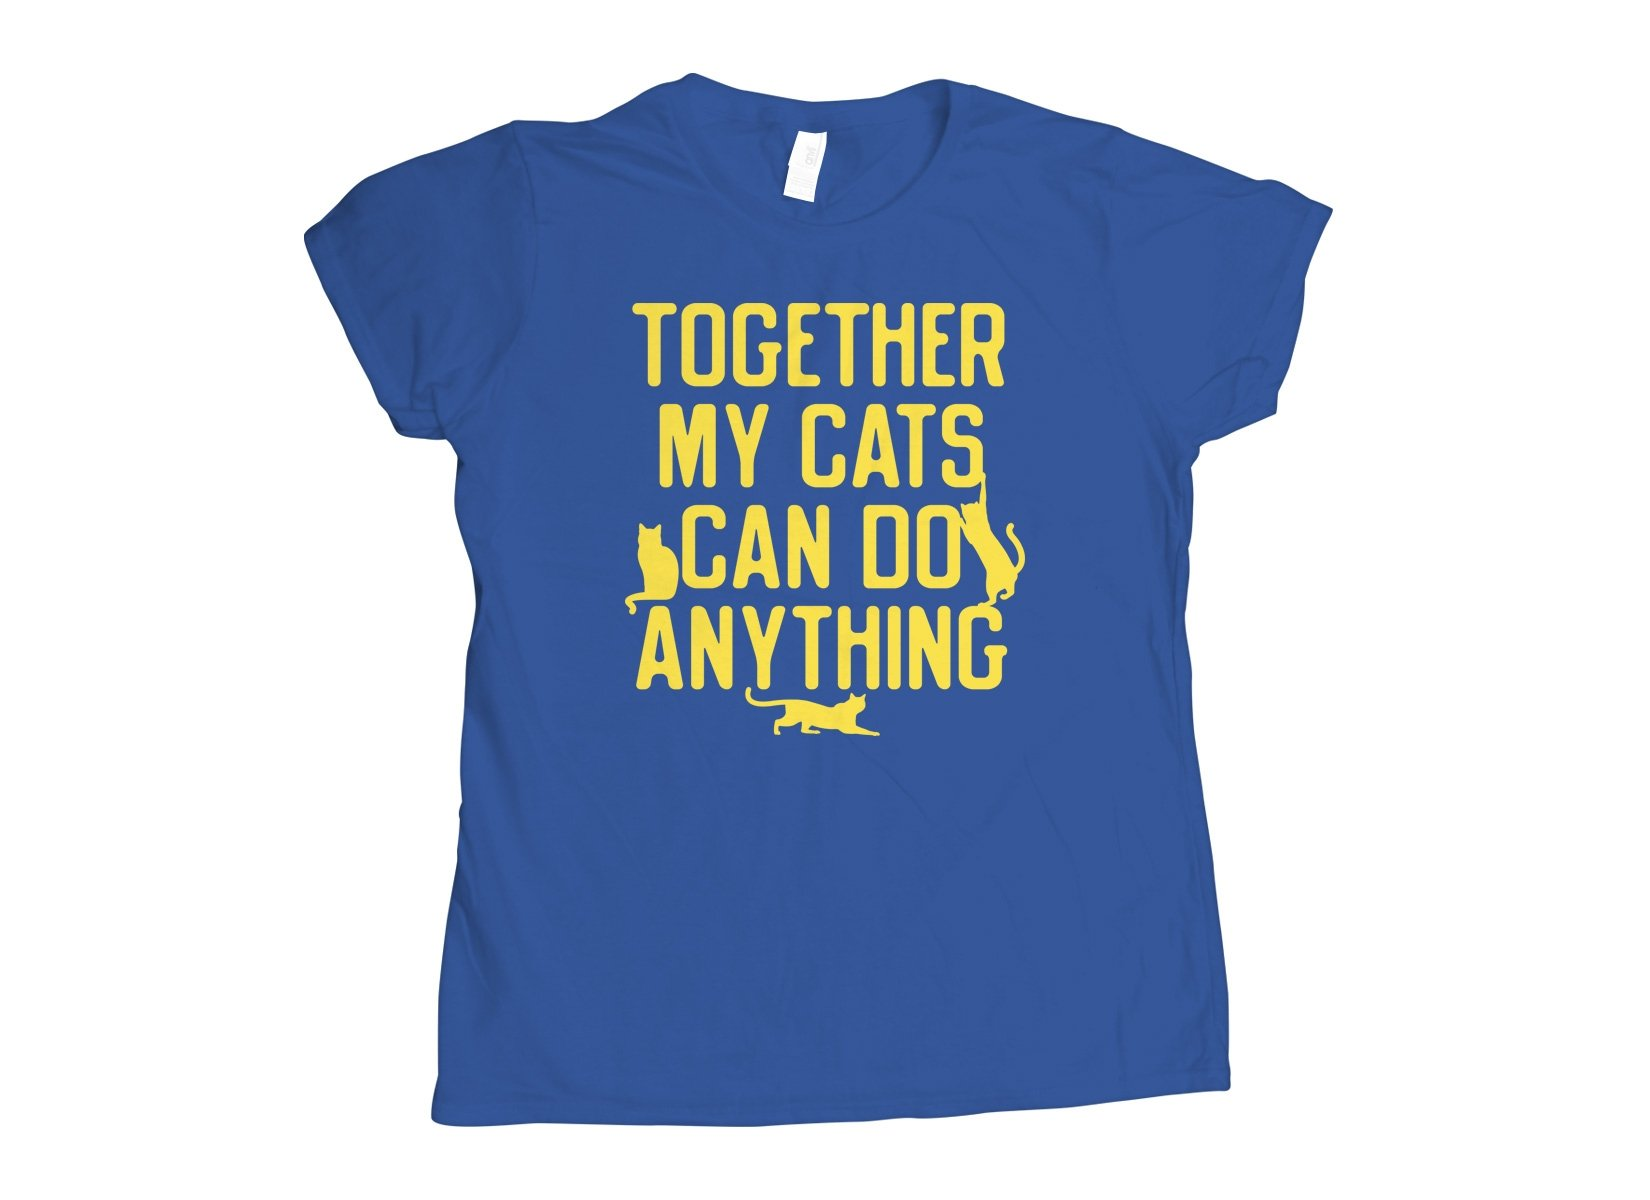 Together My Cats Can Do Anything on Womens T-Shirt